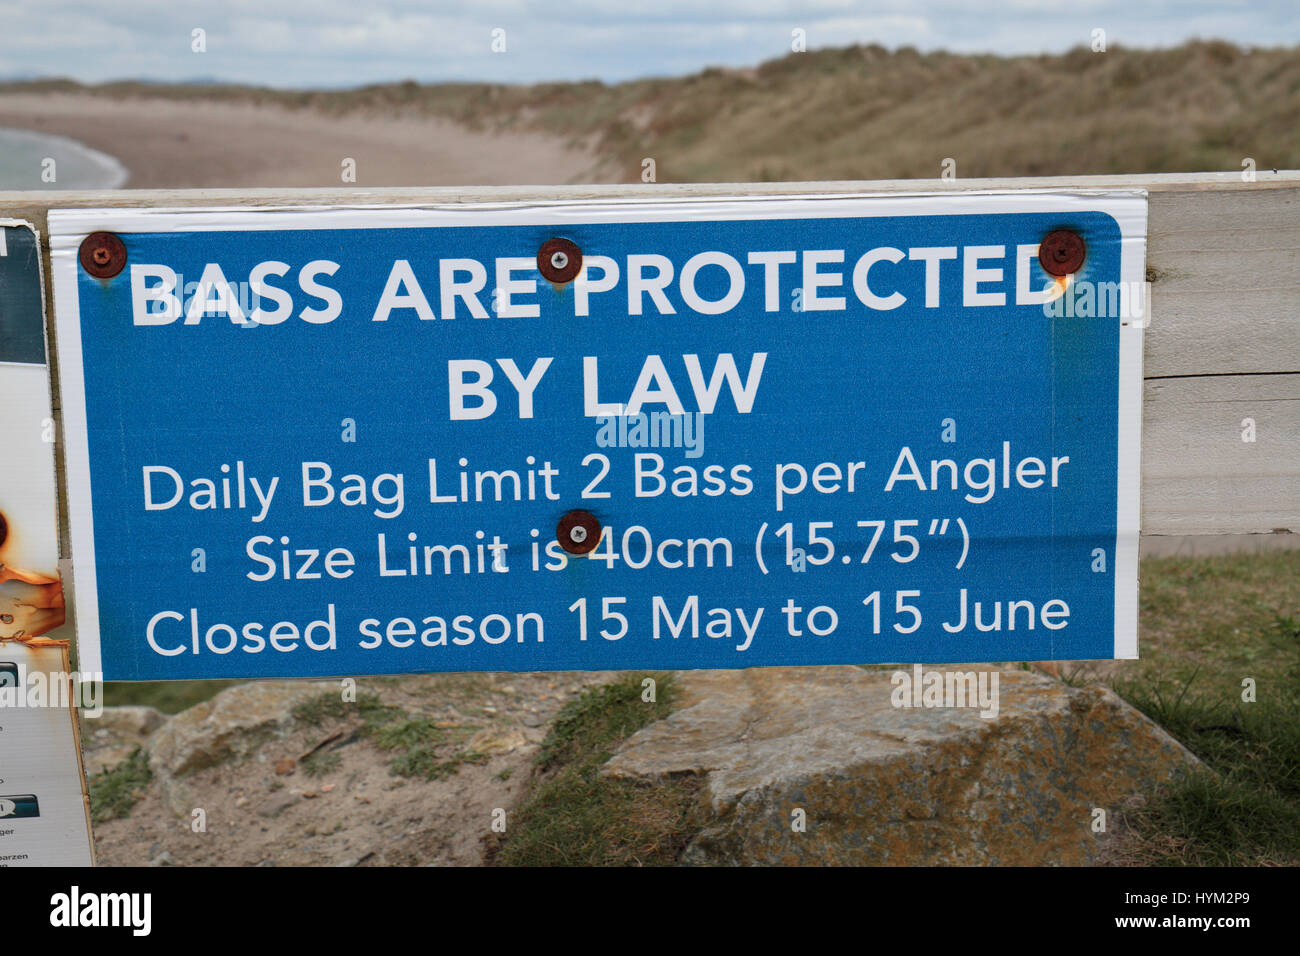 A Bass fishing sign in Kilmore Quay, County Wexford, Ireland (Eire). - Stock Image